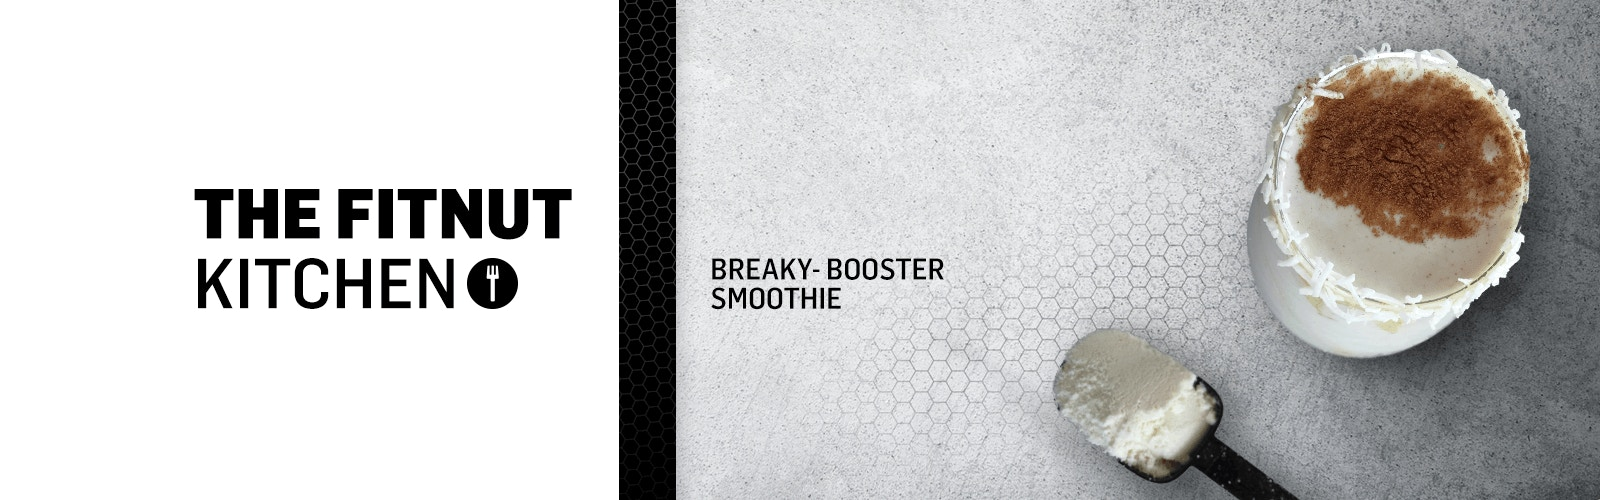 SIS - The Fitnut Kitchen - Booster Smoothie